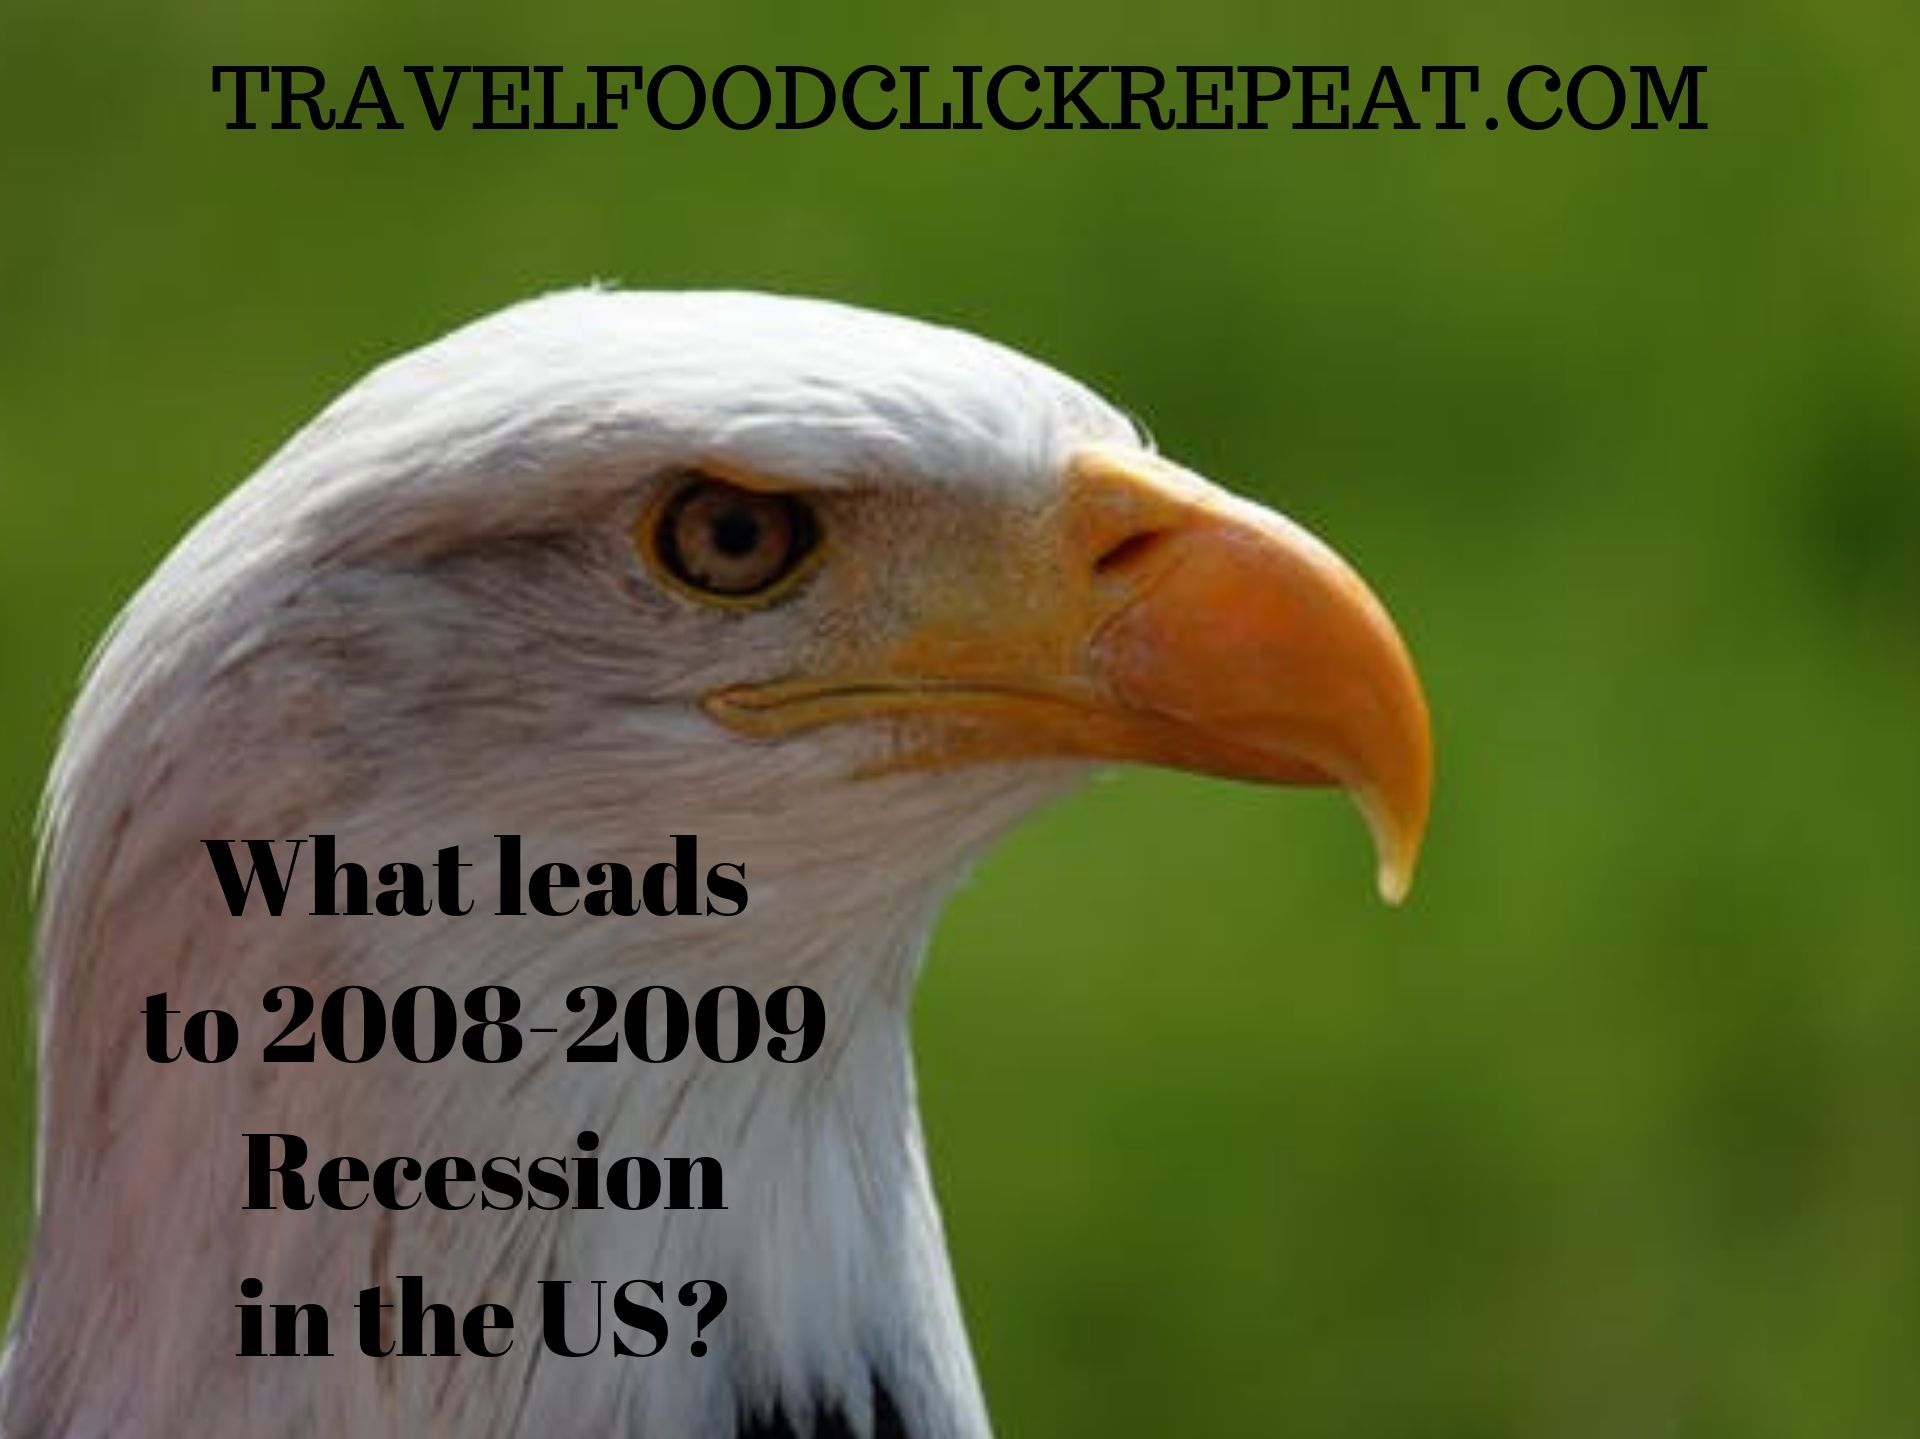 What leads to 2008-2009 Recession in the US?